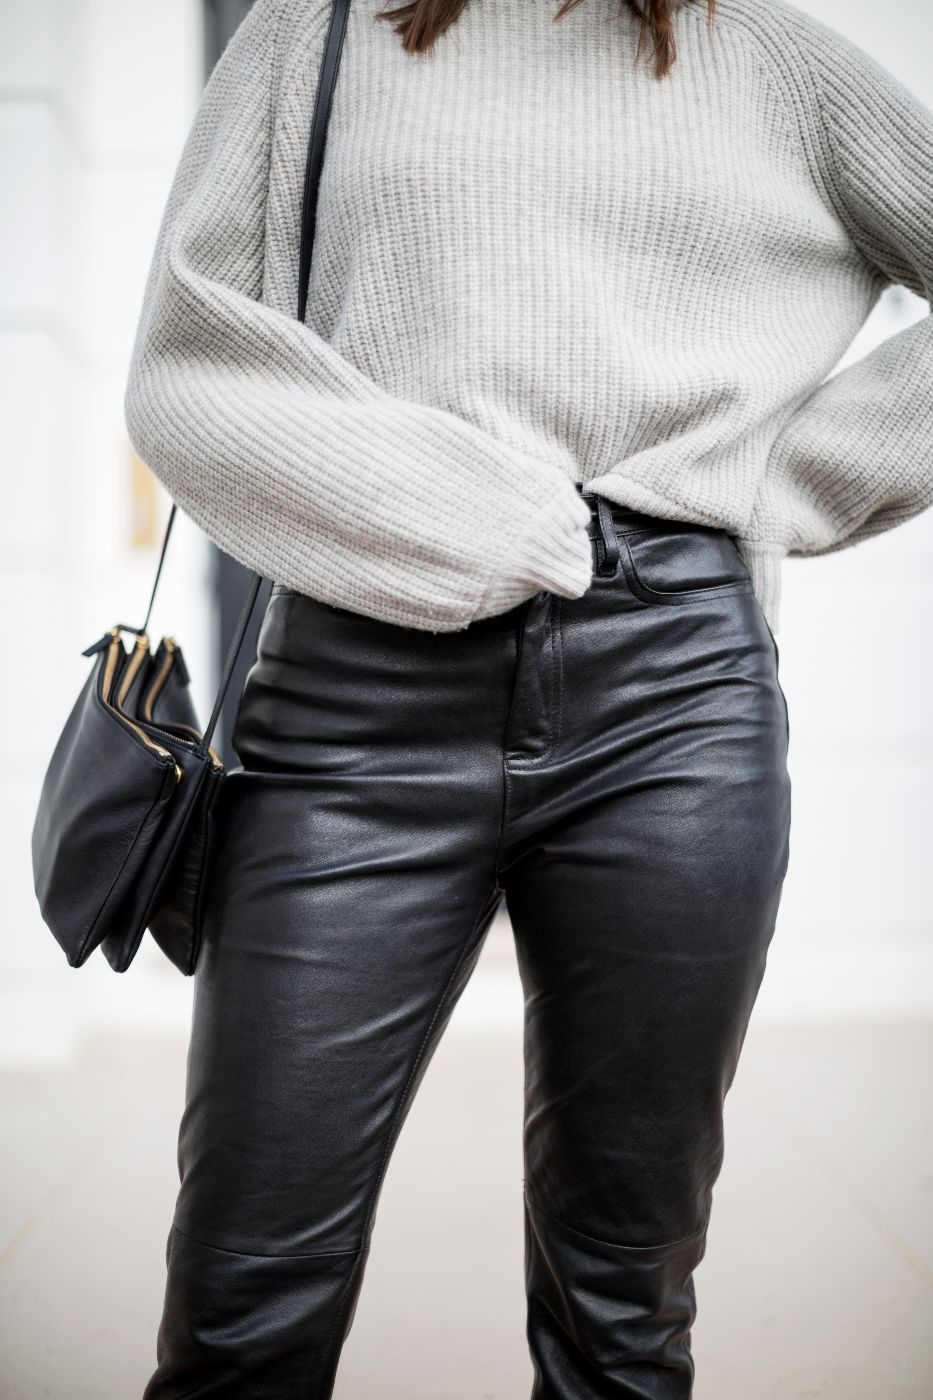 theannaedit-leather-trousers-mango-day-to-night-dressing-fashion-january-2018-5